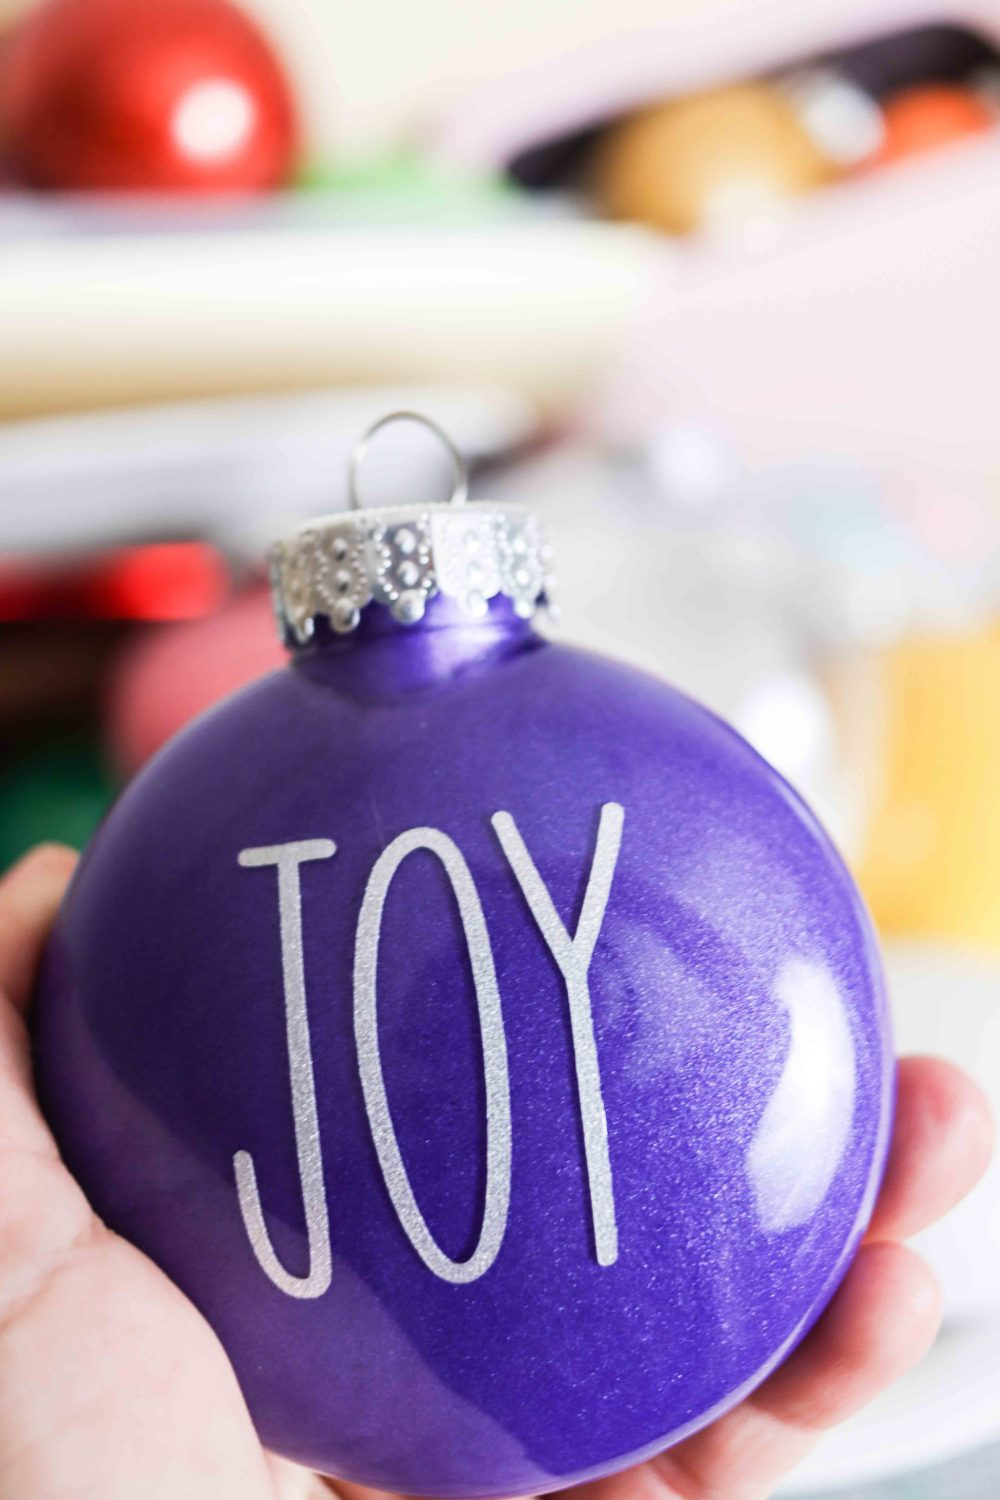 Ornament made with paint and decorated with vinyl